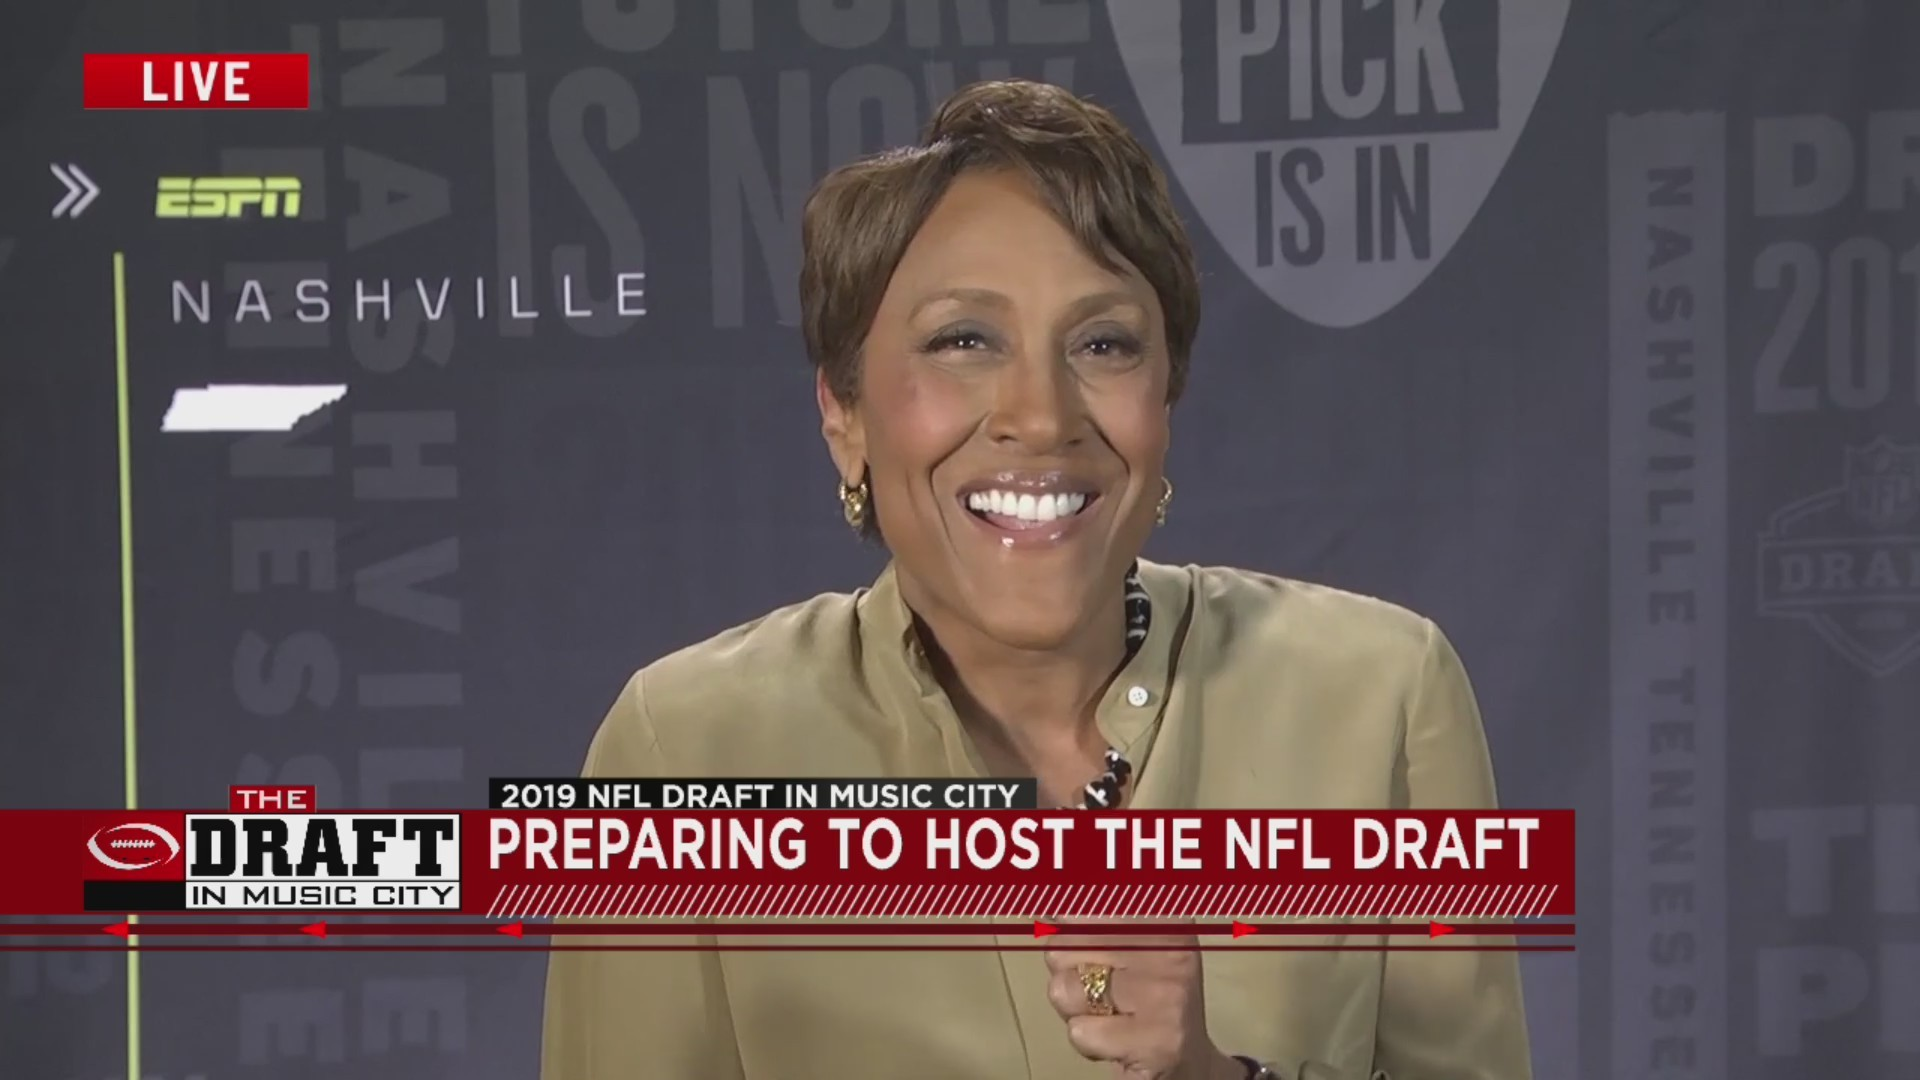 Robin_Roberts_preparing_to_host_the_NFL__0_20190424173021-873703986